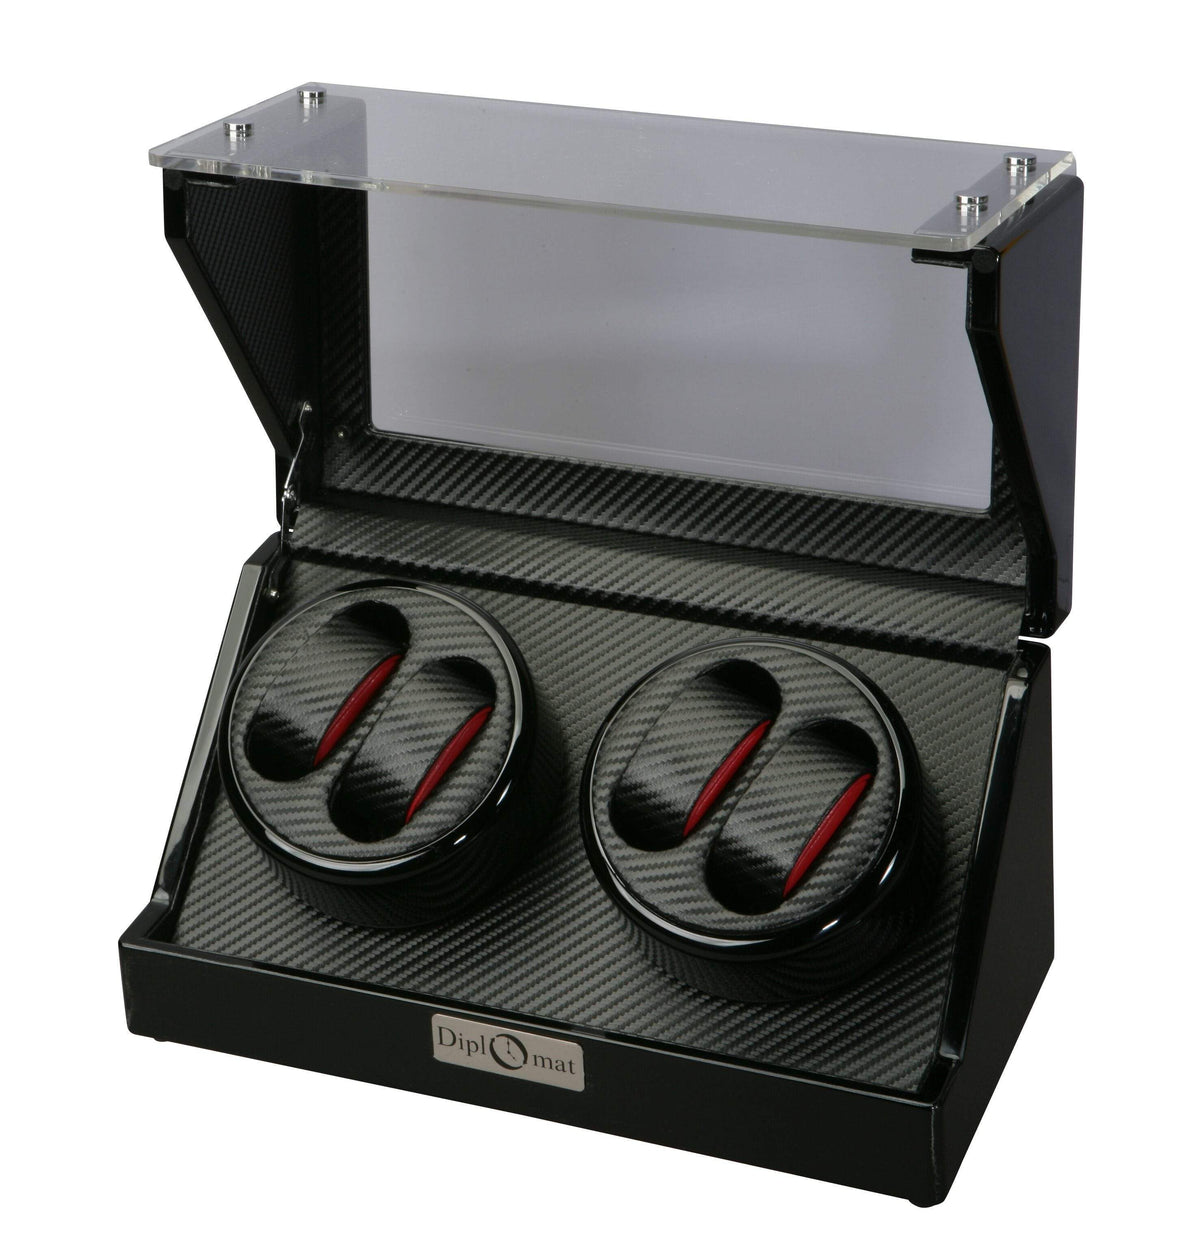 Diplomat Gothica Black Wood Quad Watch Winder with Black Carbon Fiber Pattern Interior and Smart Internal Bi-Directional Timer Control , Battery/AC Powered Armadillo Safe and Vault